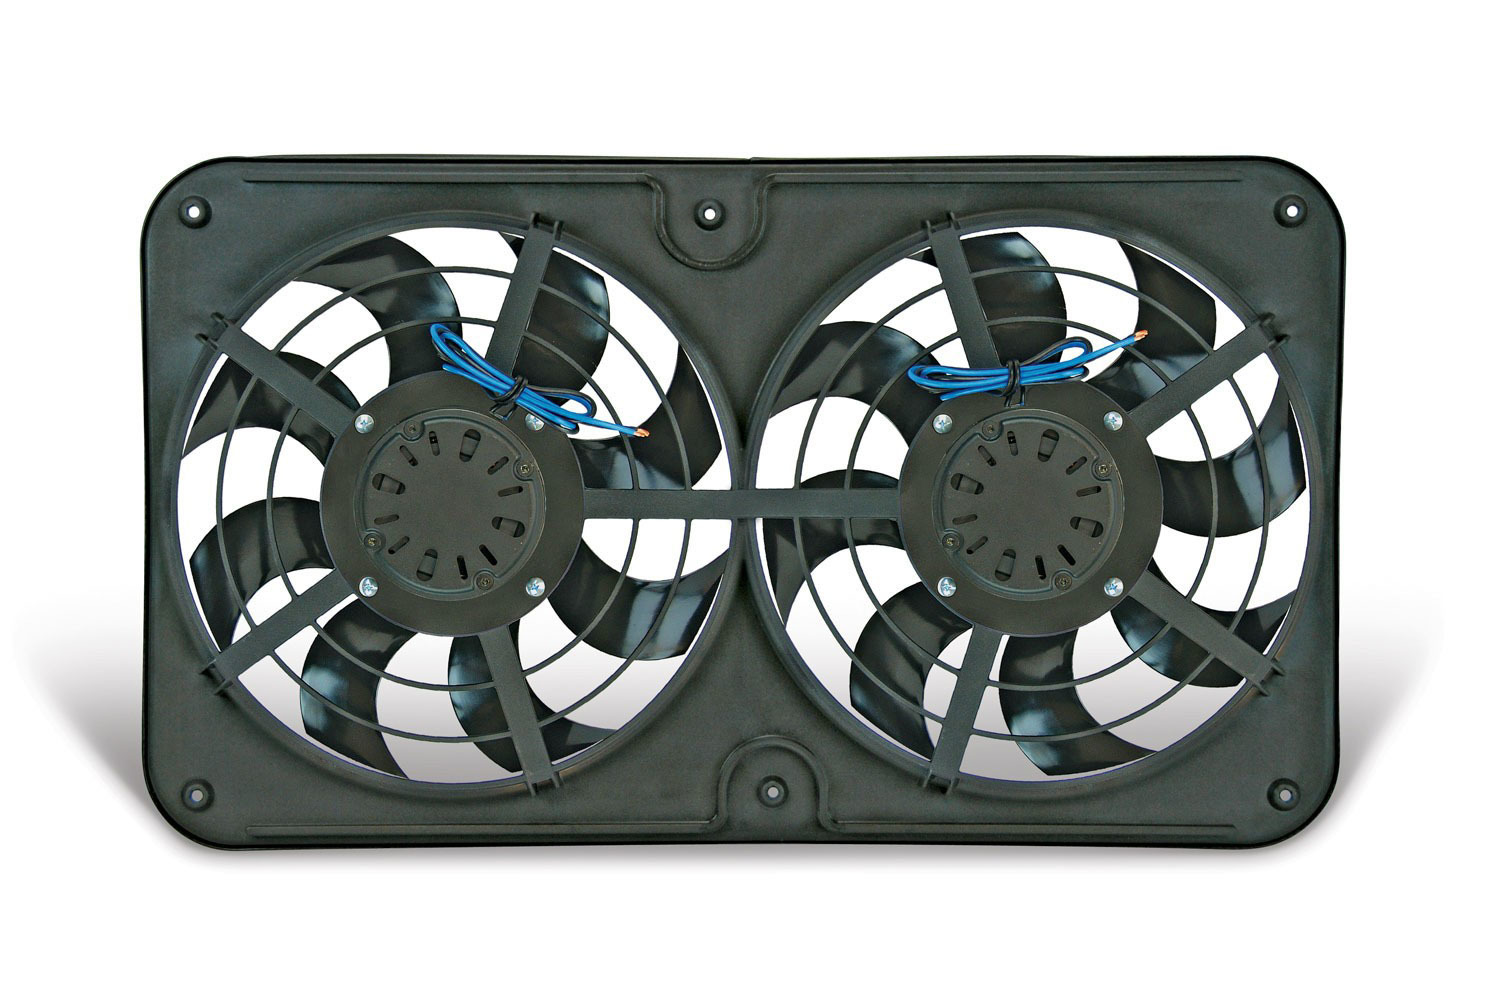 Flex-A-Lite 104350 Electric Cooling Fan, X-Treme S-Blade, Dual 12-1/8 in Fan, Push / Pull, 3000 CFM, 12V, Curved Blade, 26-1/4 x 15-1/2 in, 4 in Thick, Controller, Plastic, Kit